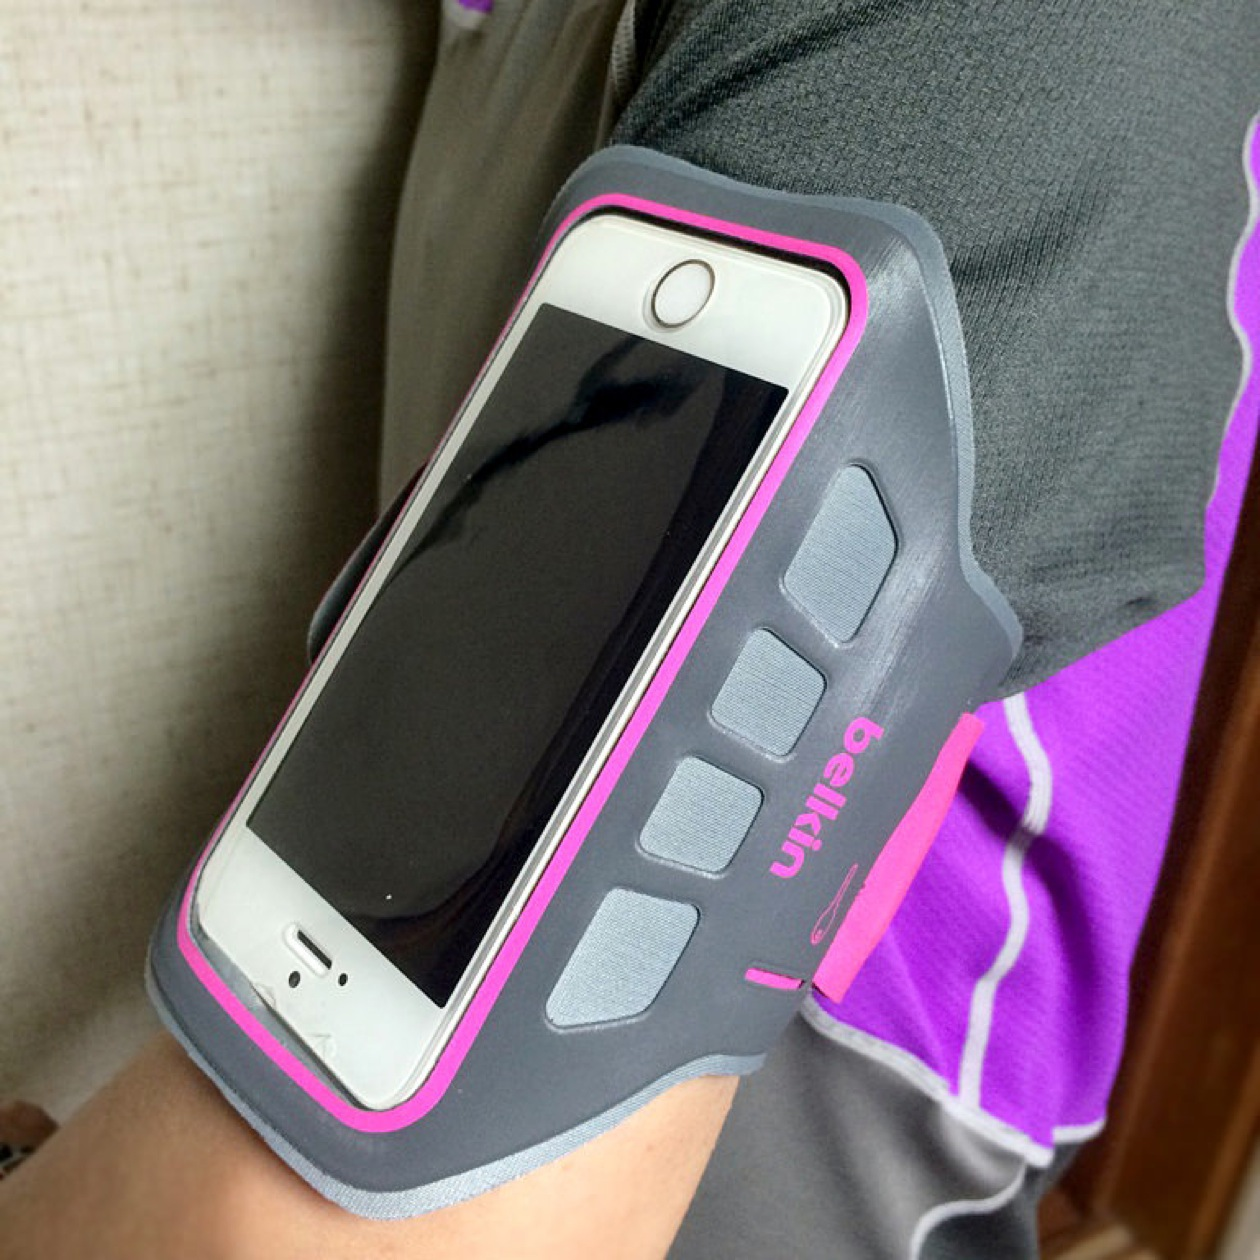 Belkin ease fit plus iphone 装着感